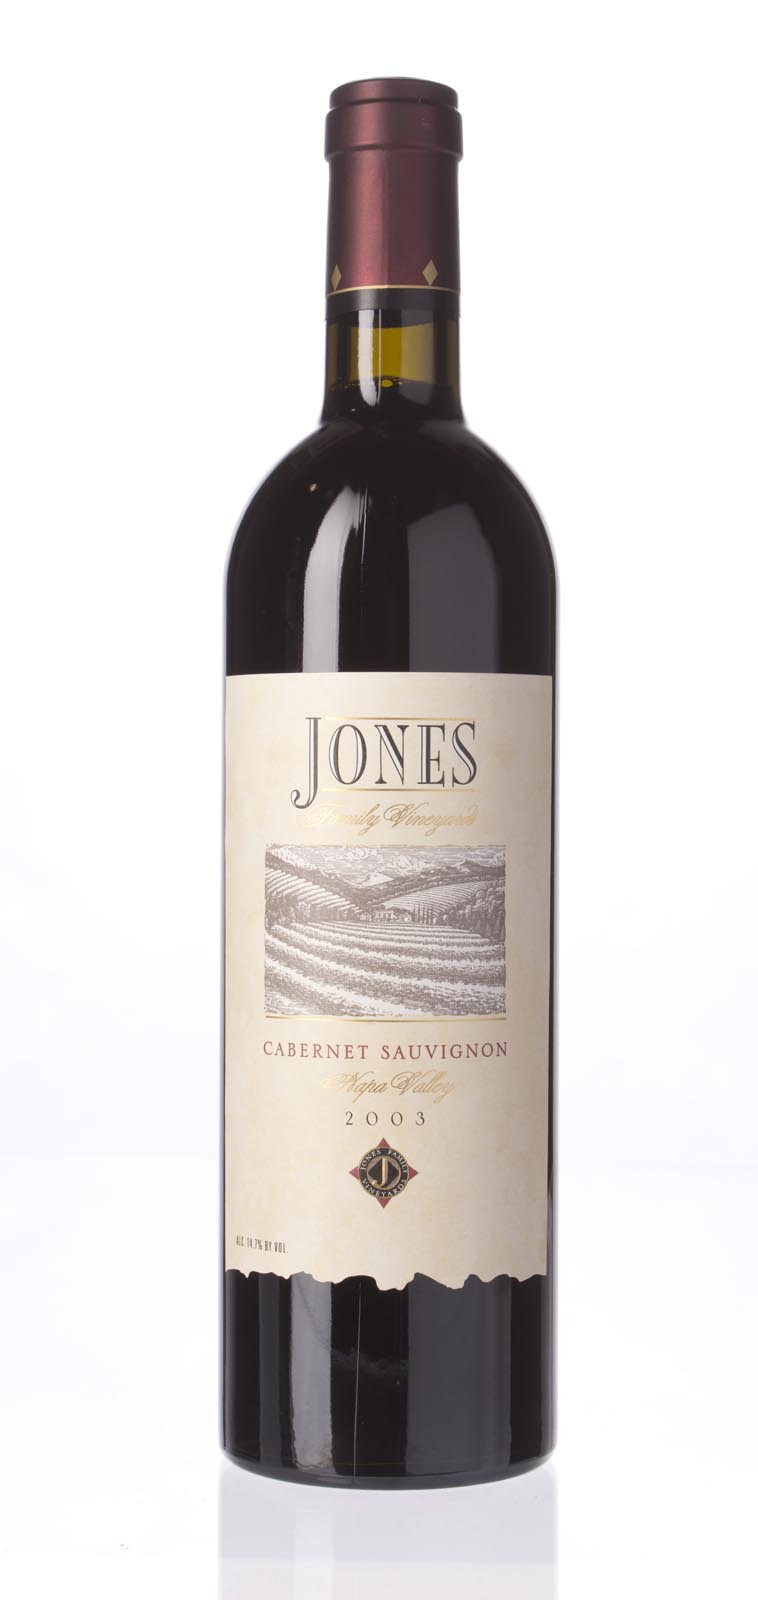 Jones Family Vineyard Cabernet Sauvignon Napa Valley 2003, 750ml (WA90) from The BPW - Merchants of rare and fine wines.